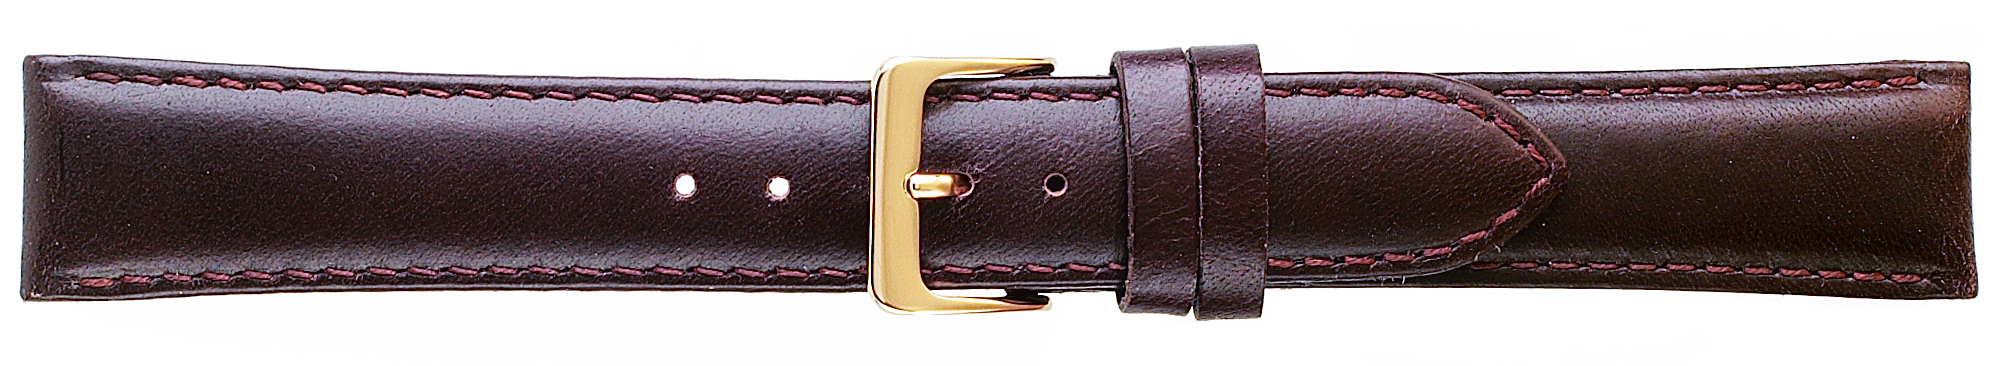 18MM Classic Oilskin Brown Leather Strap -0